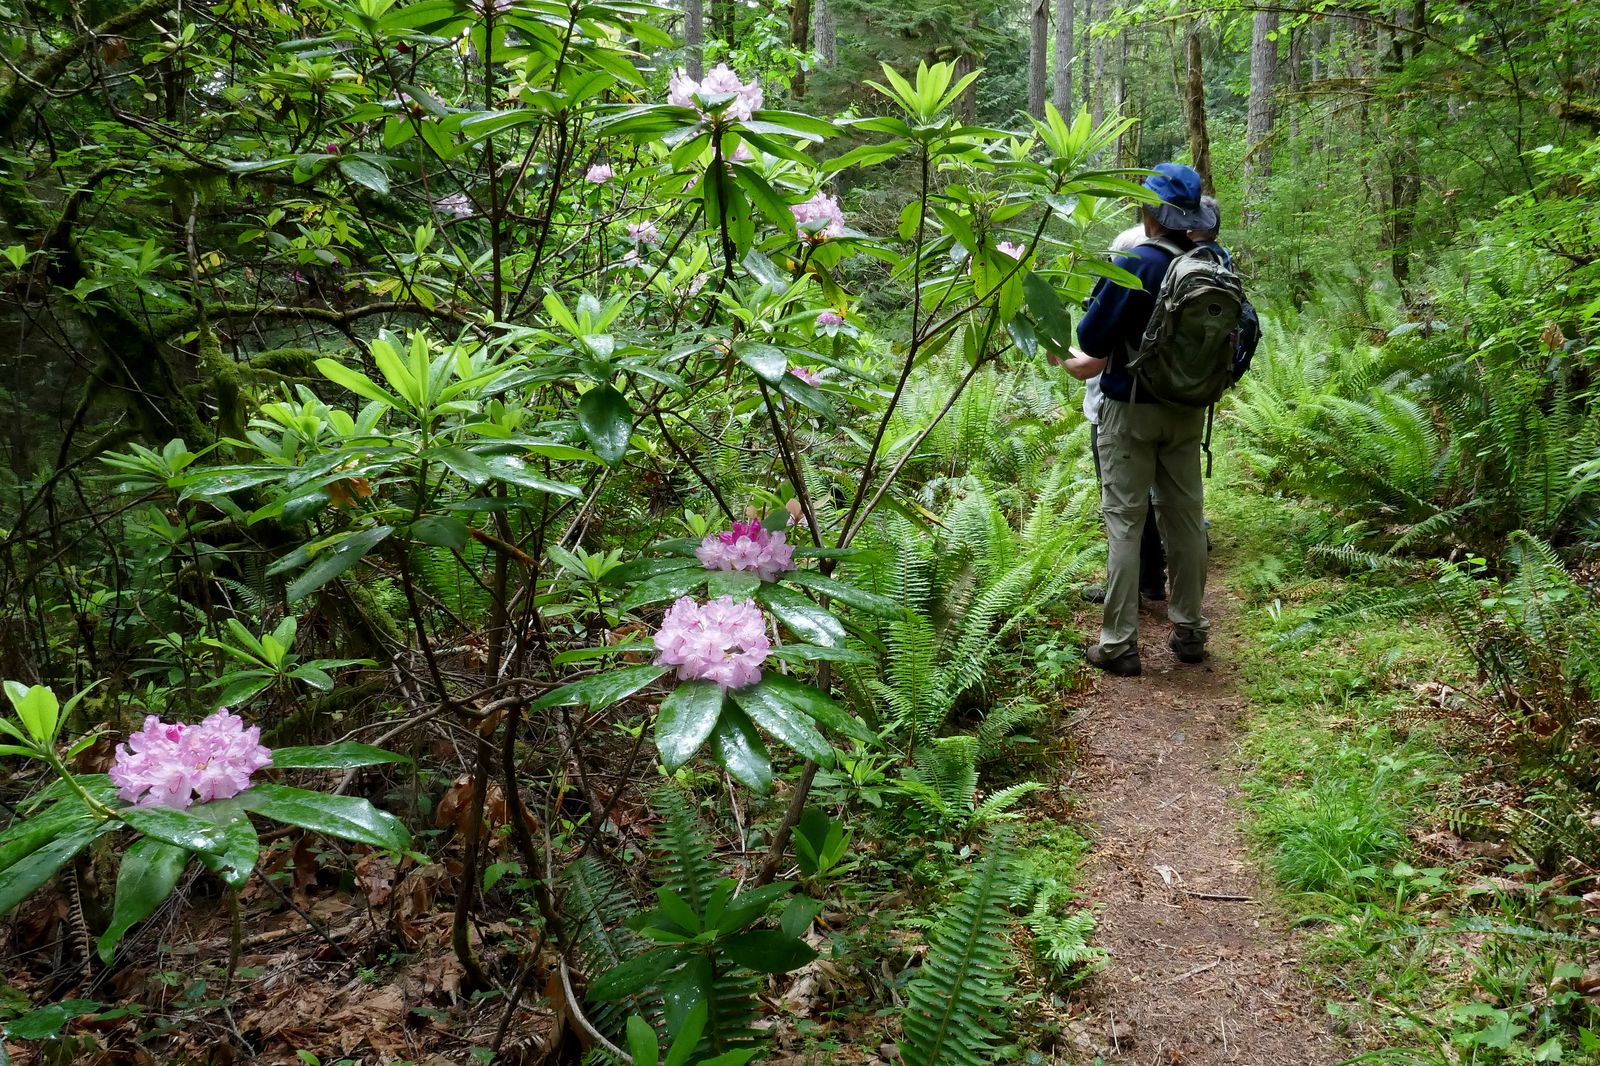 More Rhodies along the way